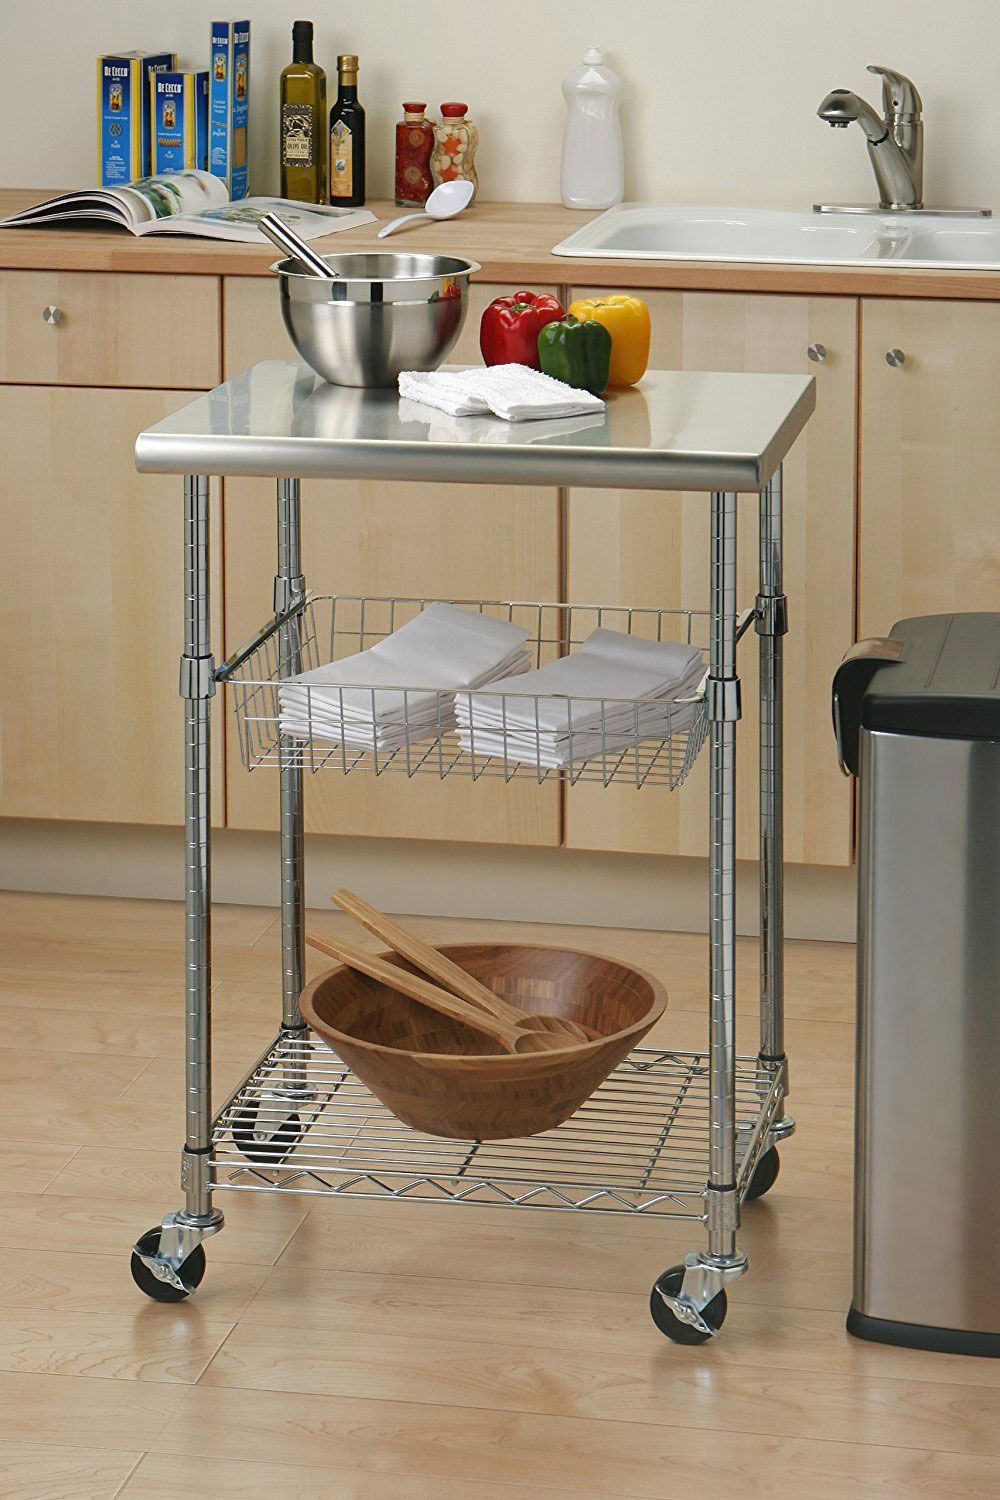 Best Stainless Steel Table With Wheels